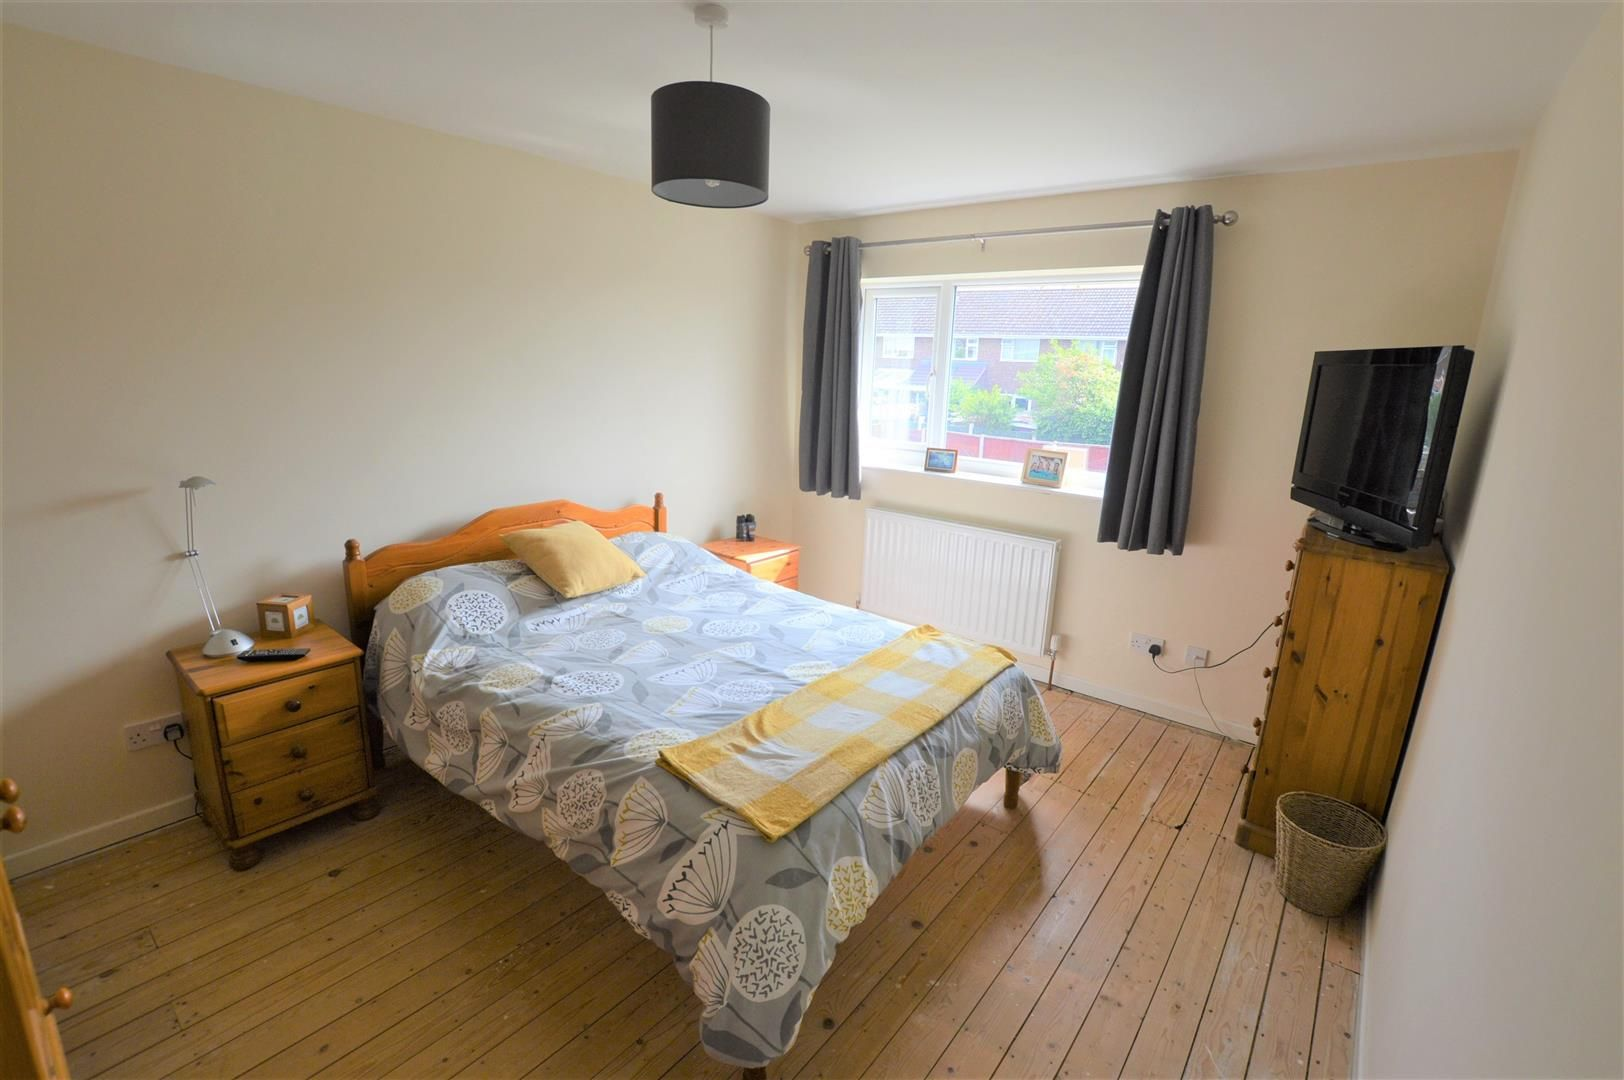 3 bed end-of-terrace for sale in Leominster  - Property Image 5